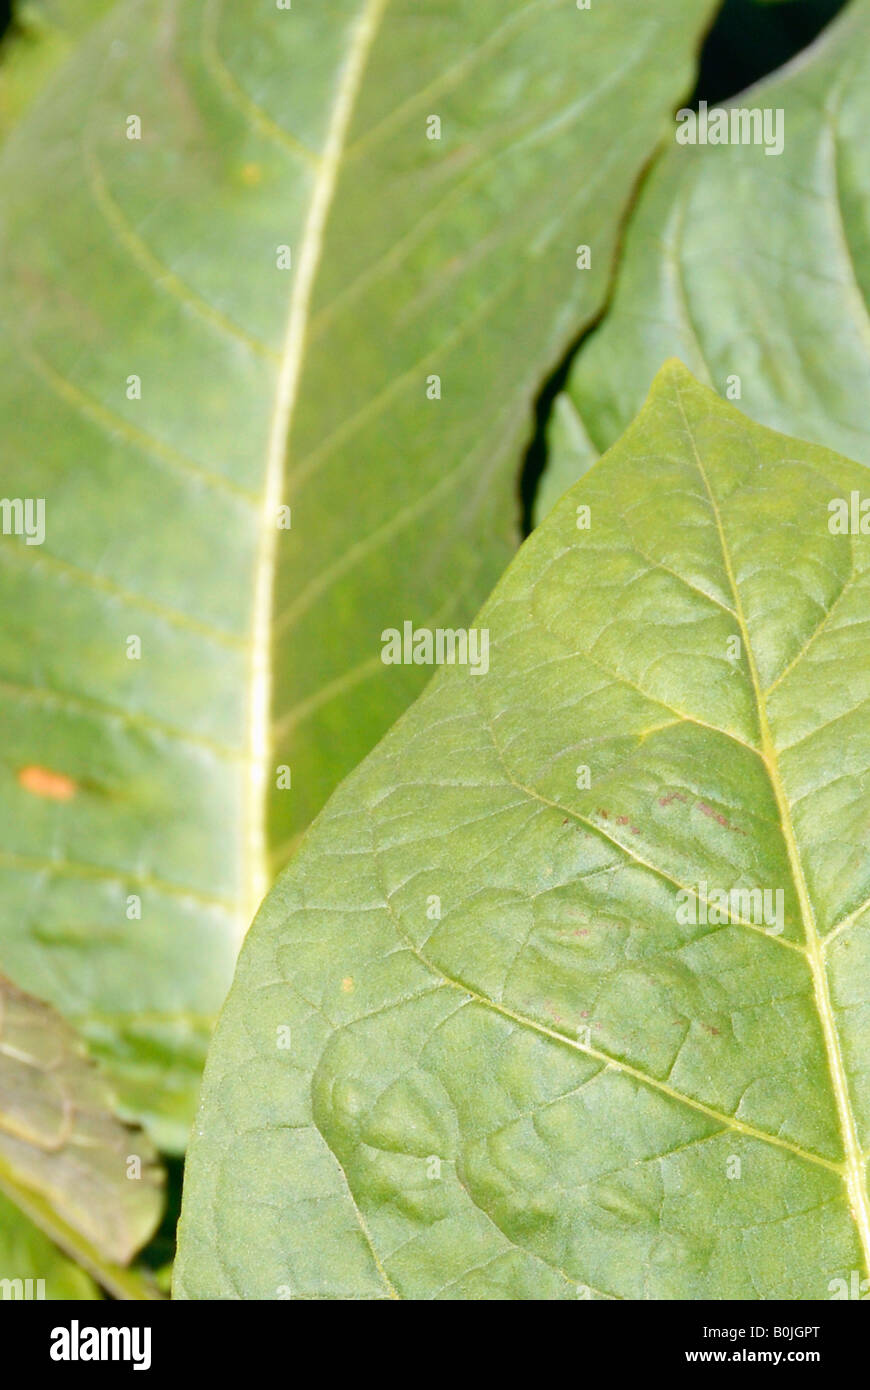 Close up view of tobacco leaves in a plantation - Stock Image